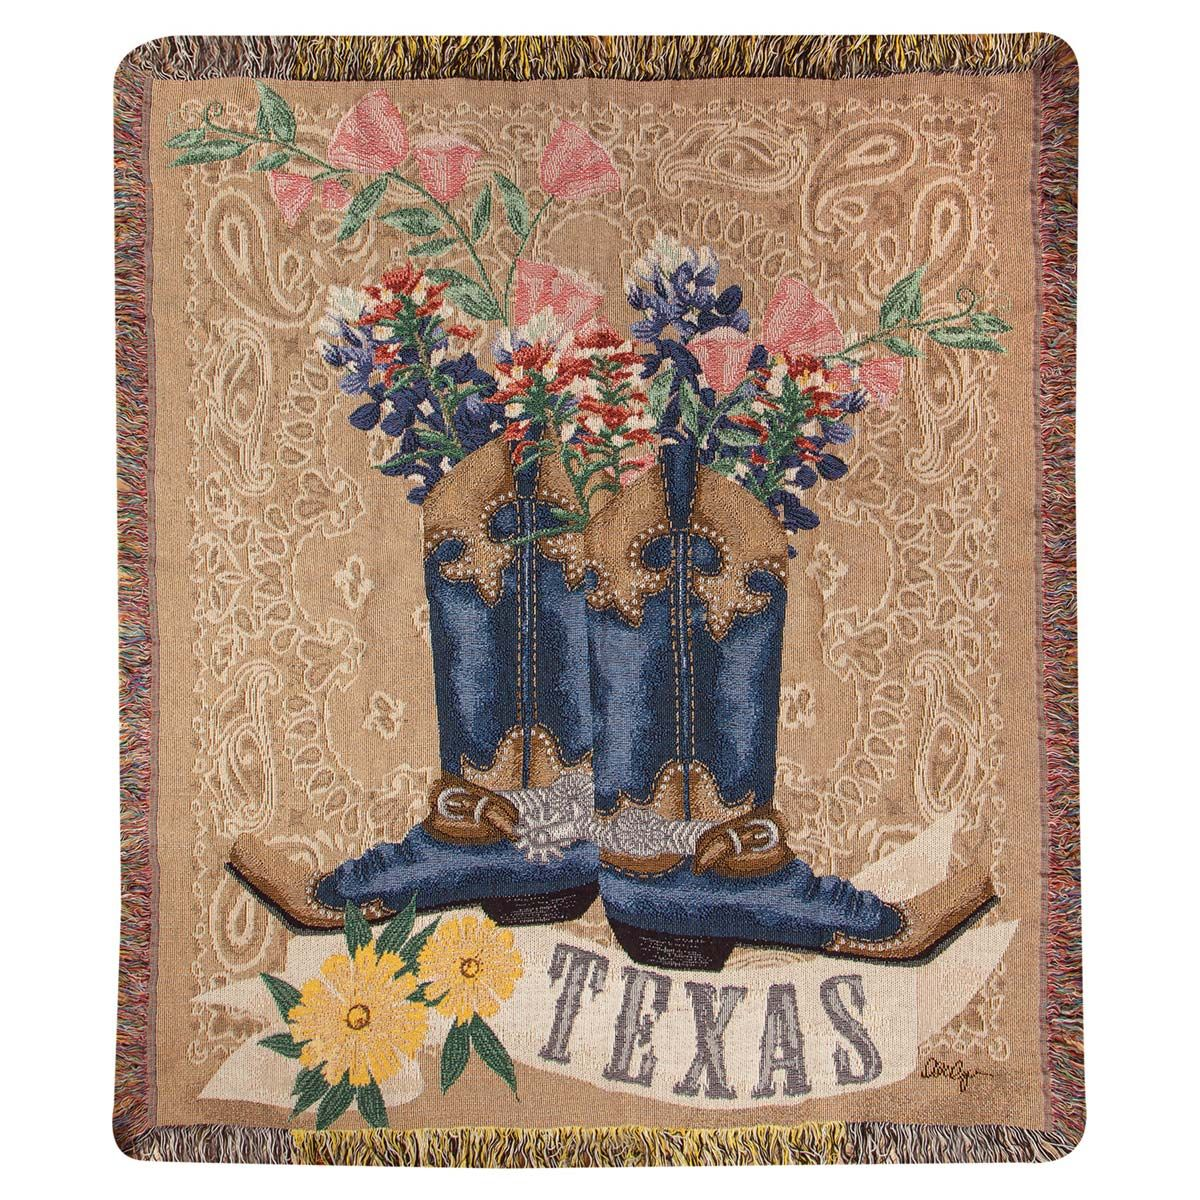 Texas Boots & Bluebonnets Tapestry Throw